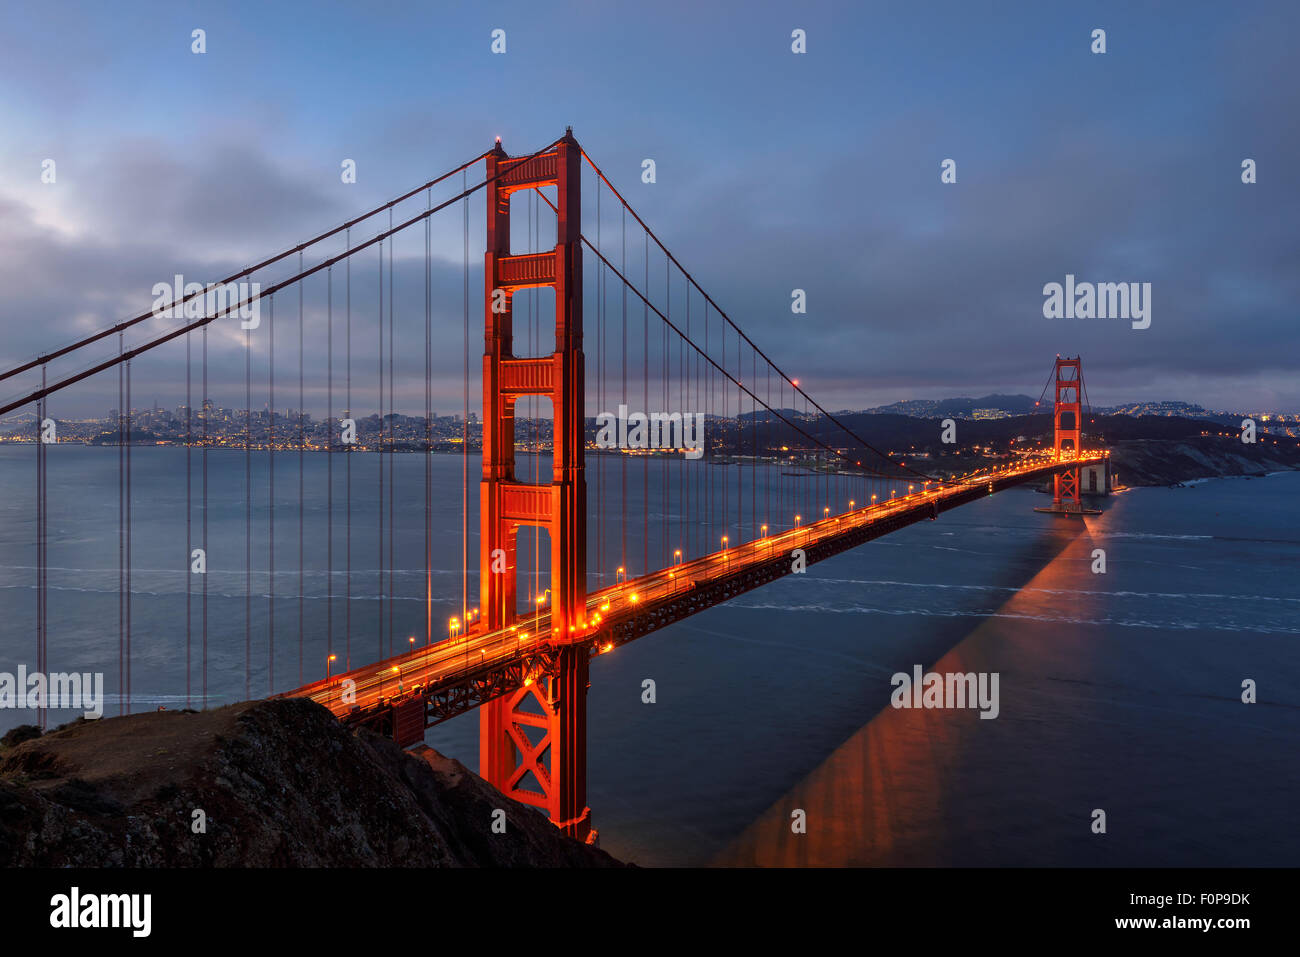 Famoso Golden Gate Bridge di San Francisco al mattino, STATI UNITI D'AMERICA Immagini Stock